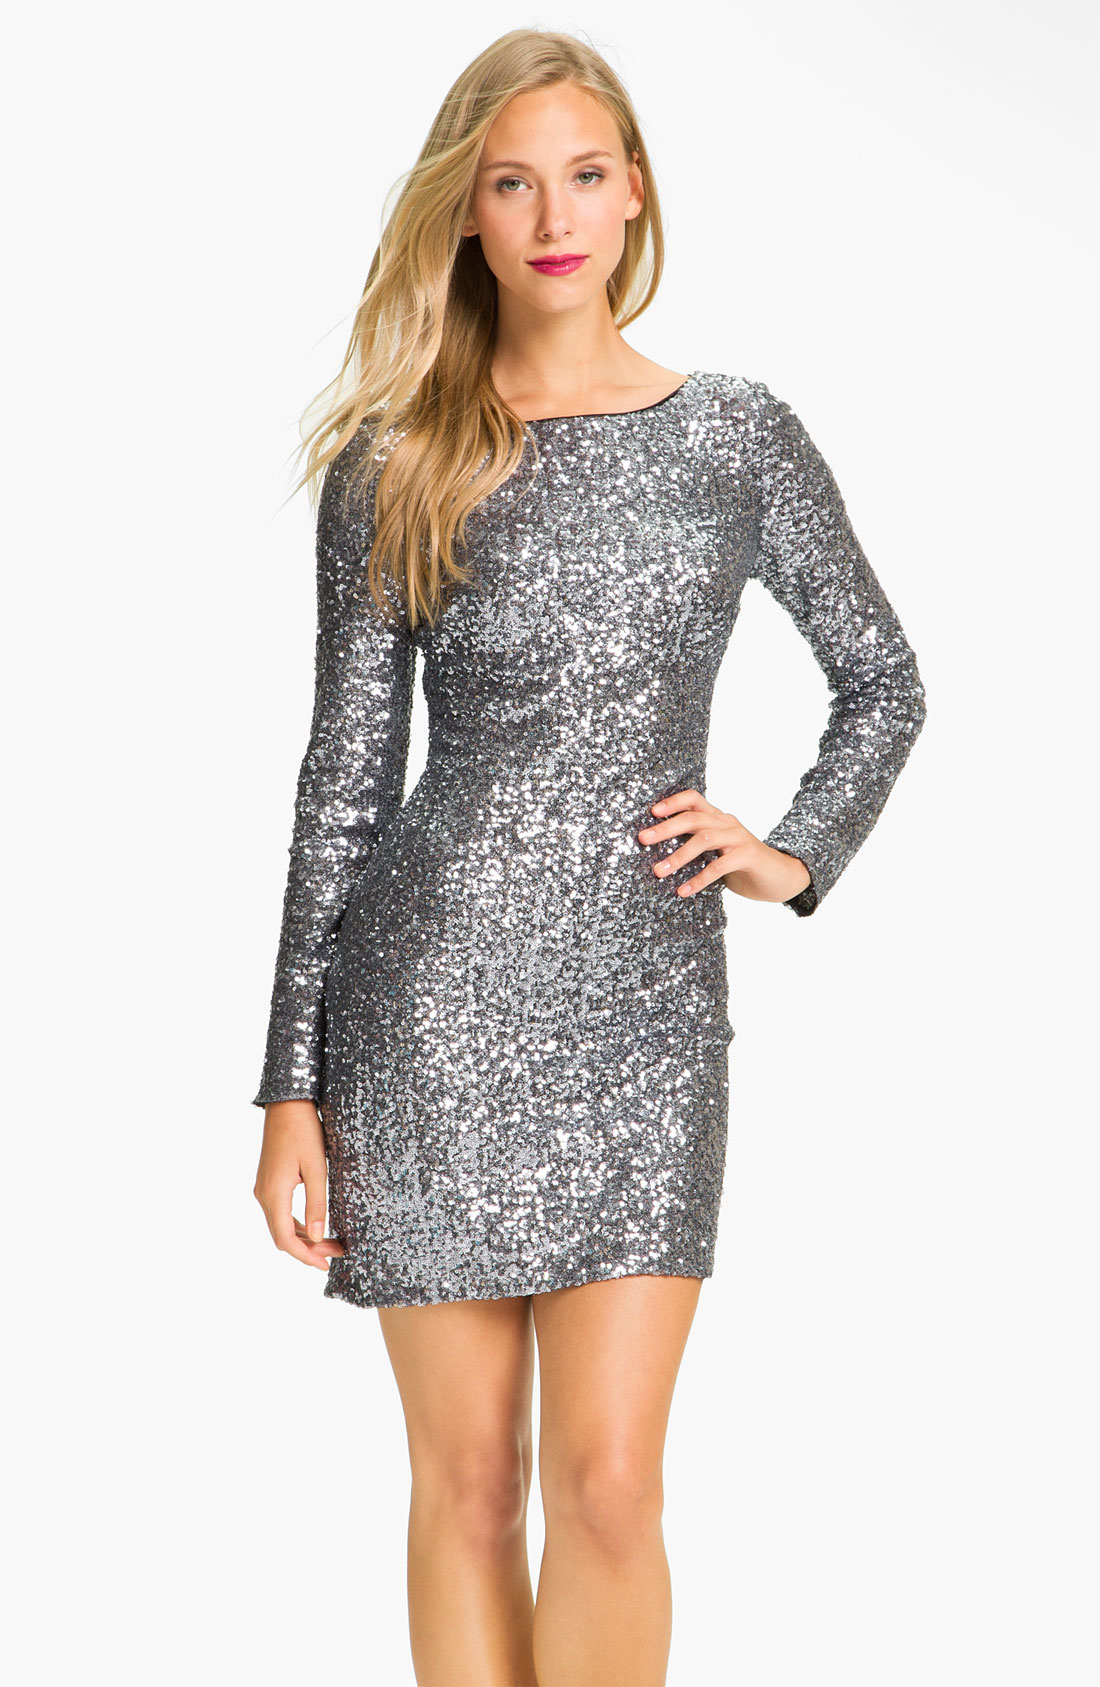 Short fitted nude cocktail dress features long sleeves, cutouts on the shoulders, a deep V neckline, sequin embellishments and a zipper in the back.